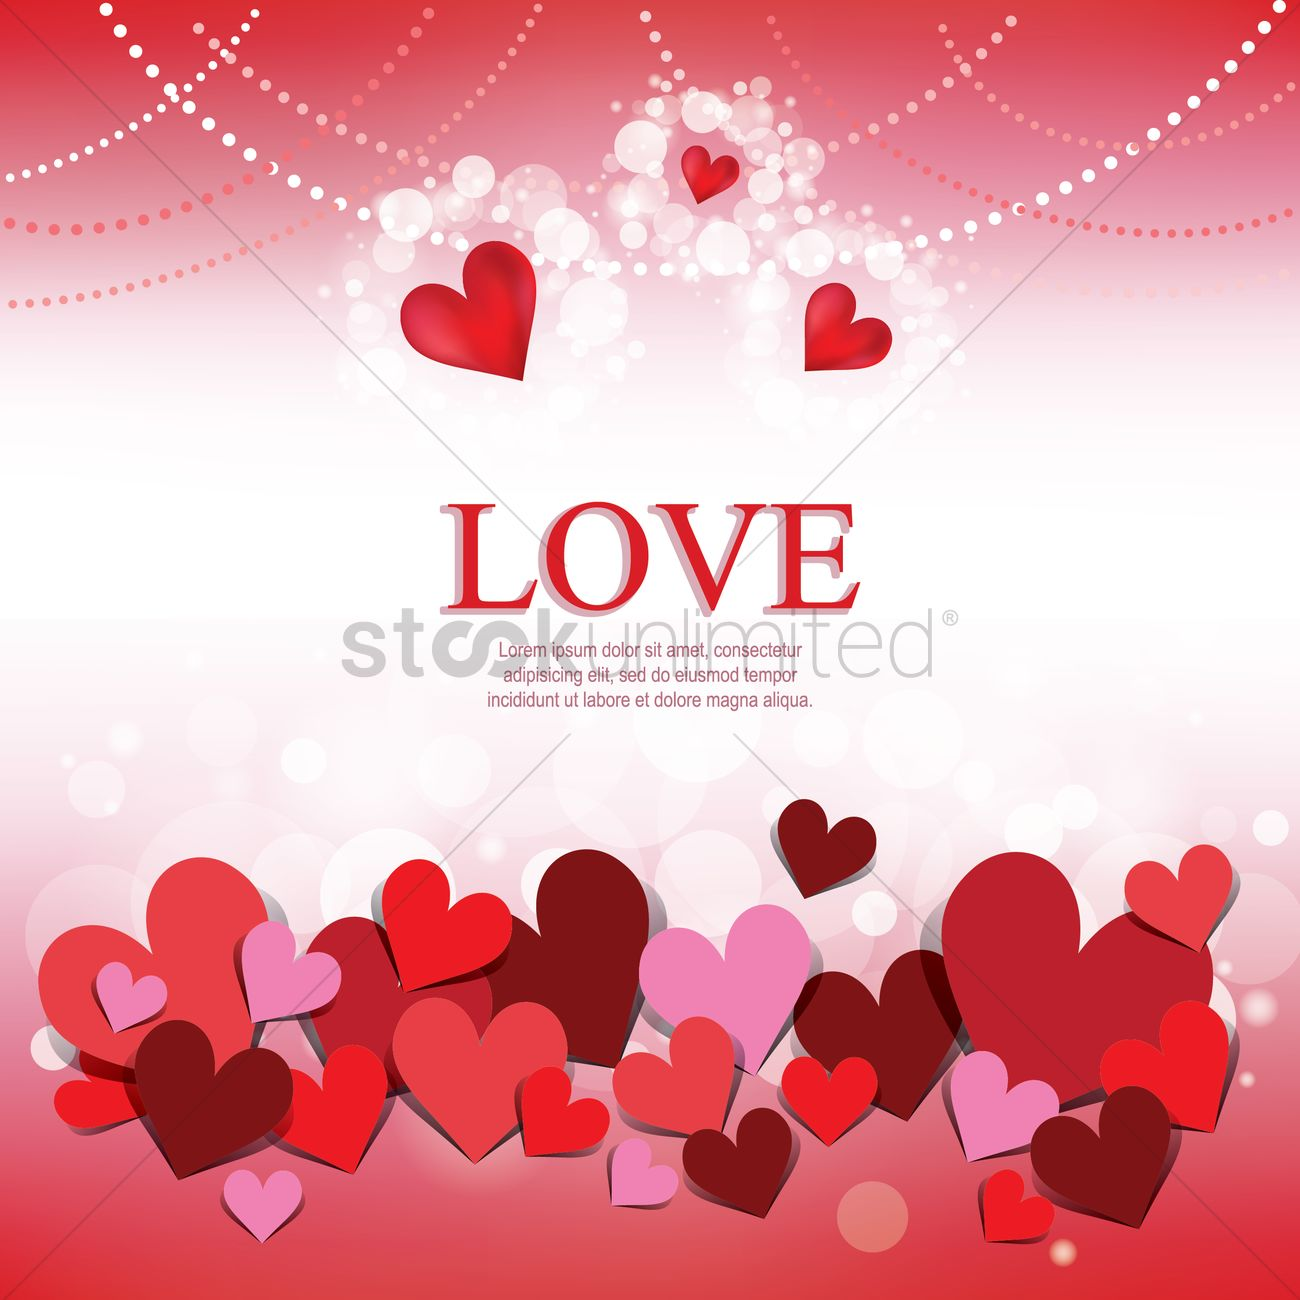 Love Wallpaper collection Zip : Photo collection Vector Love Wallpaper For Phone